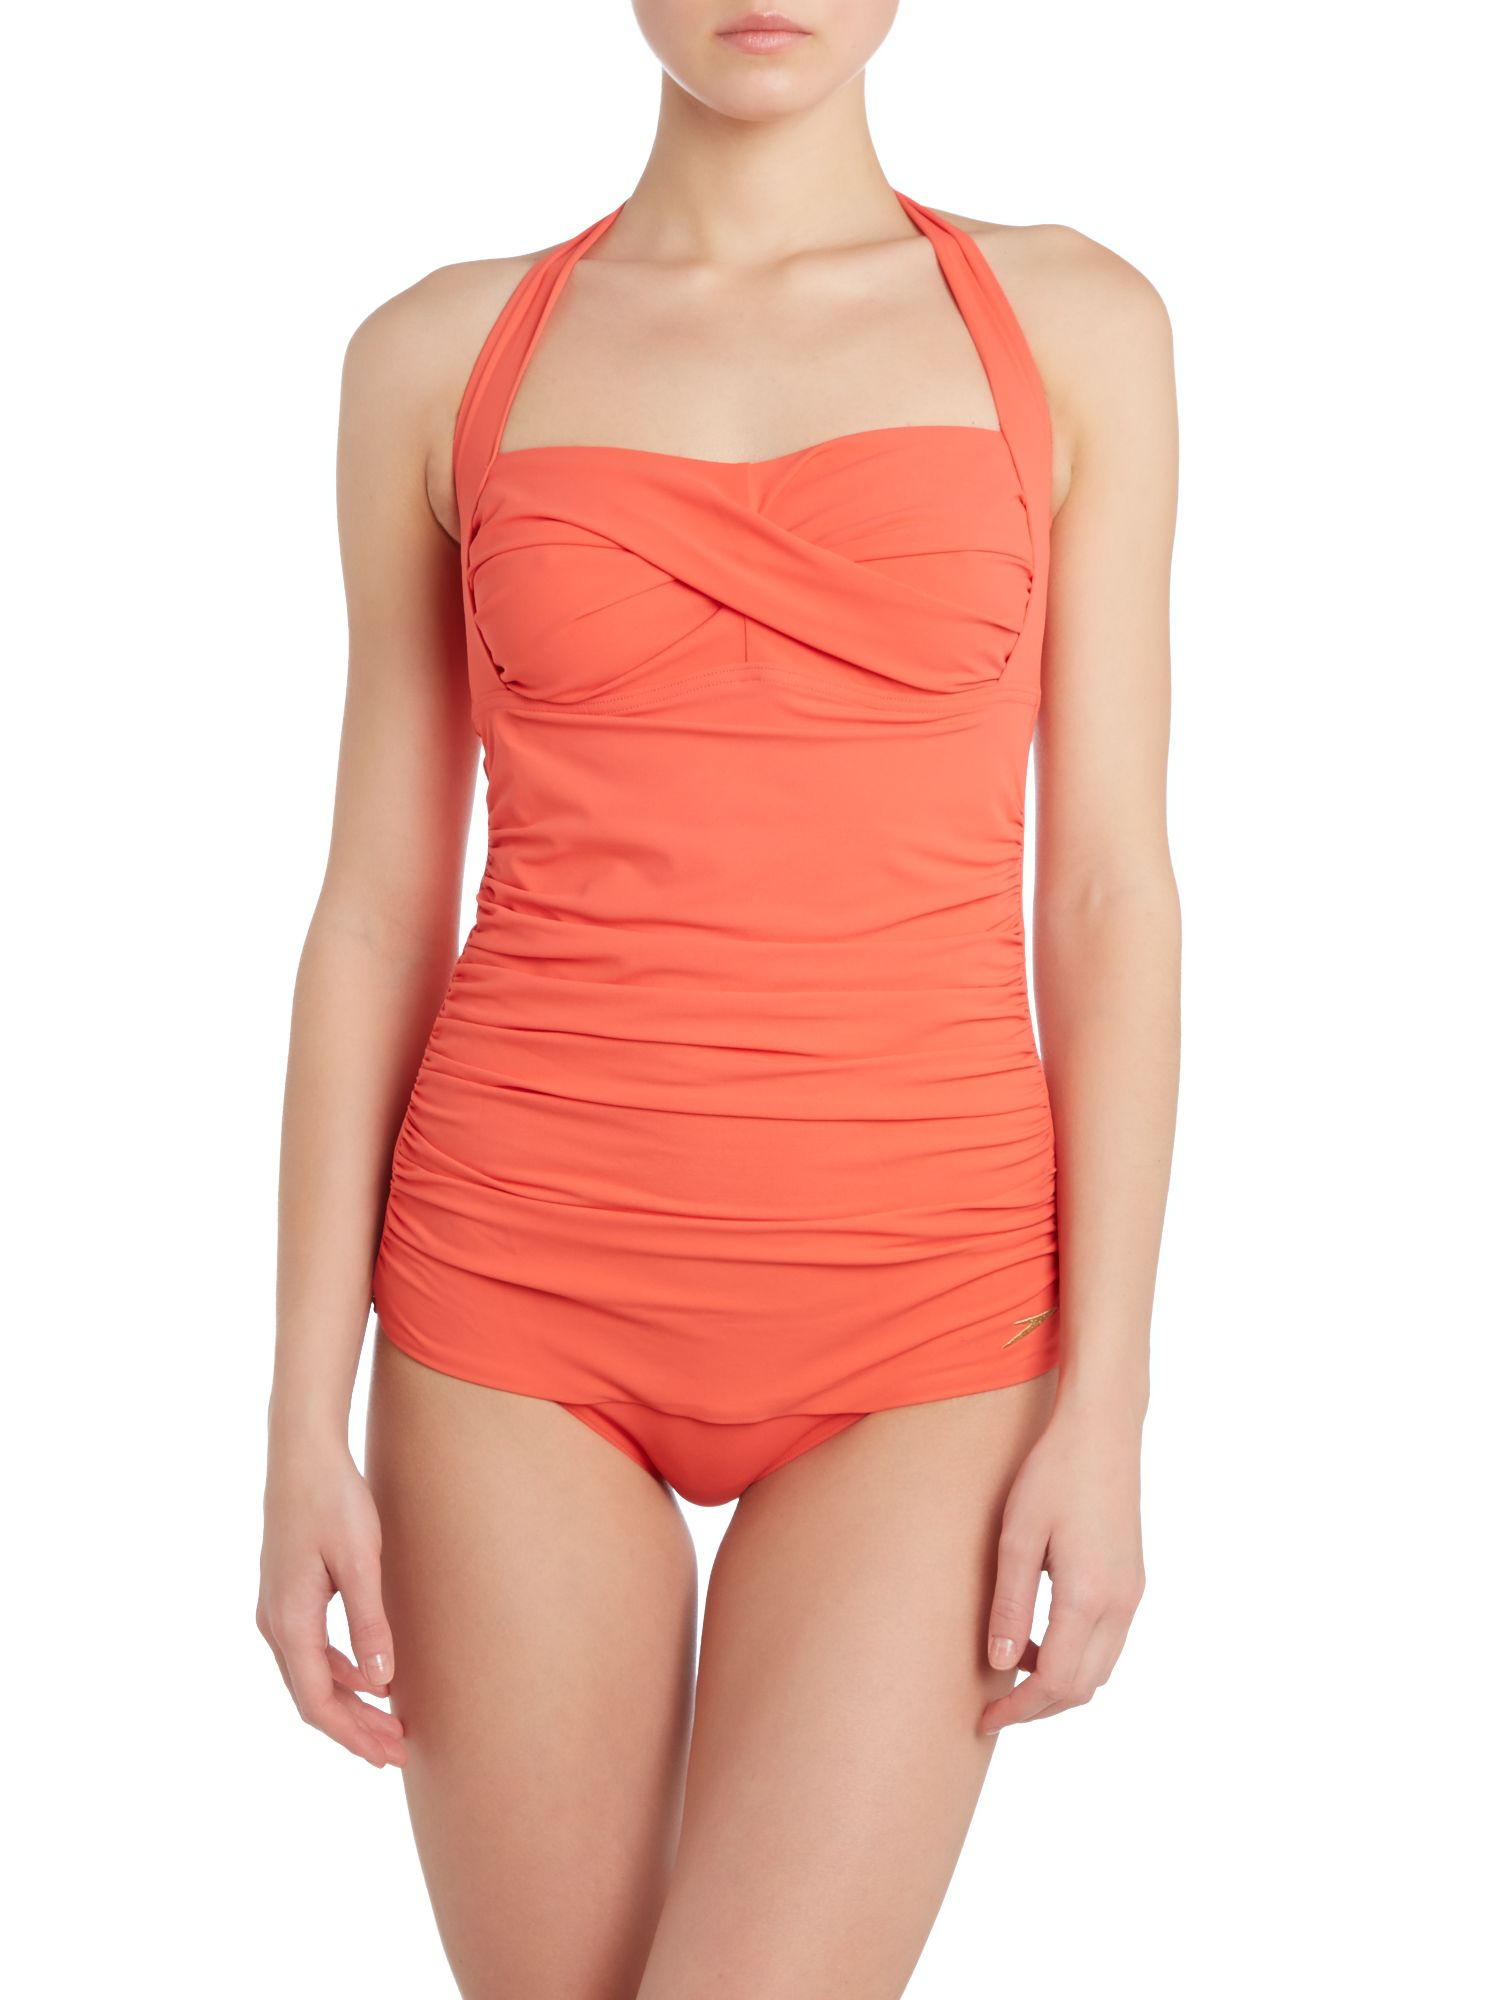 Crystal sun plain swimsuit